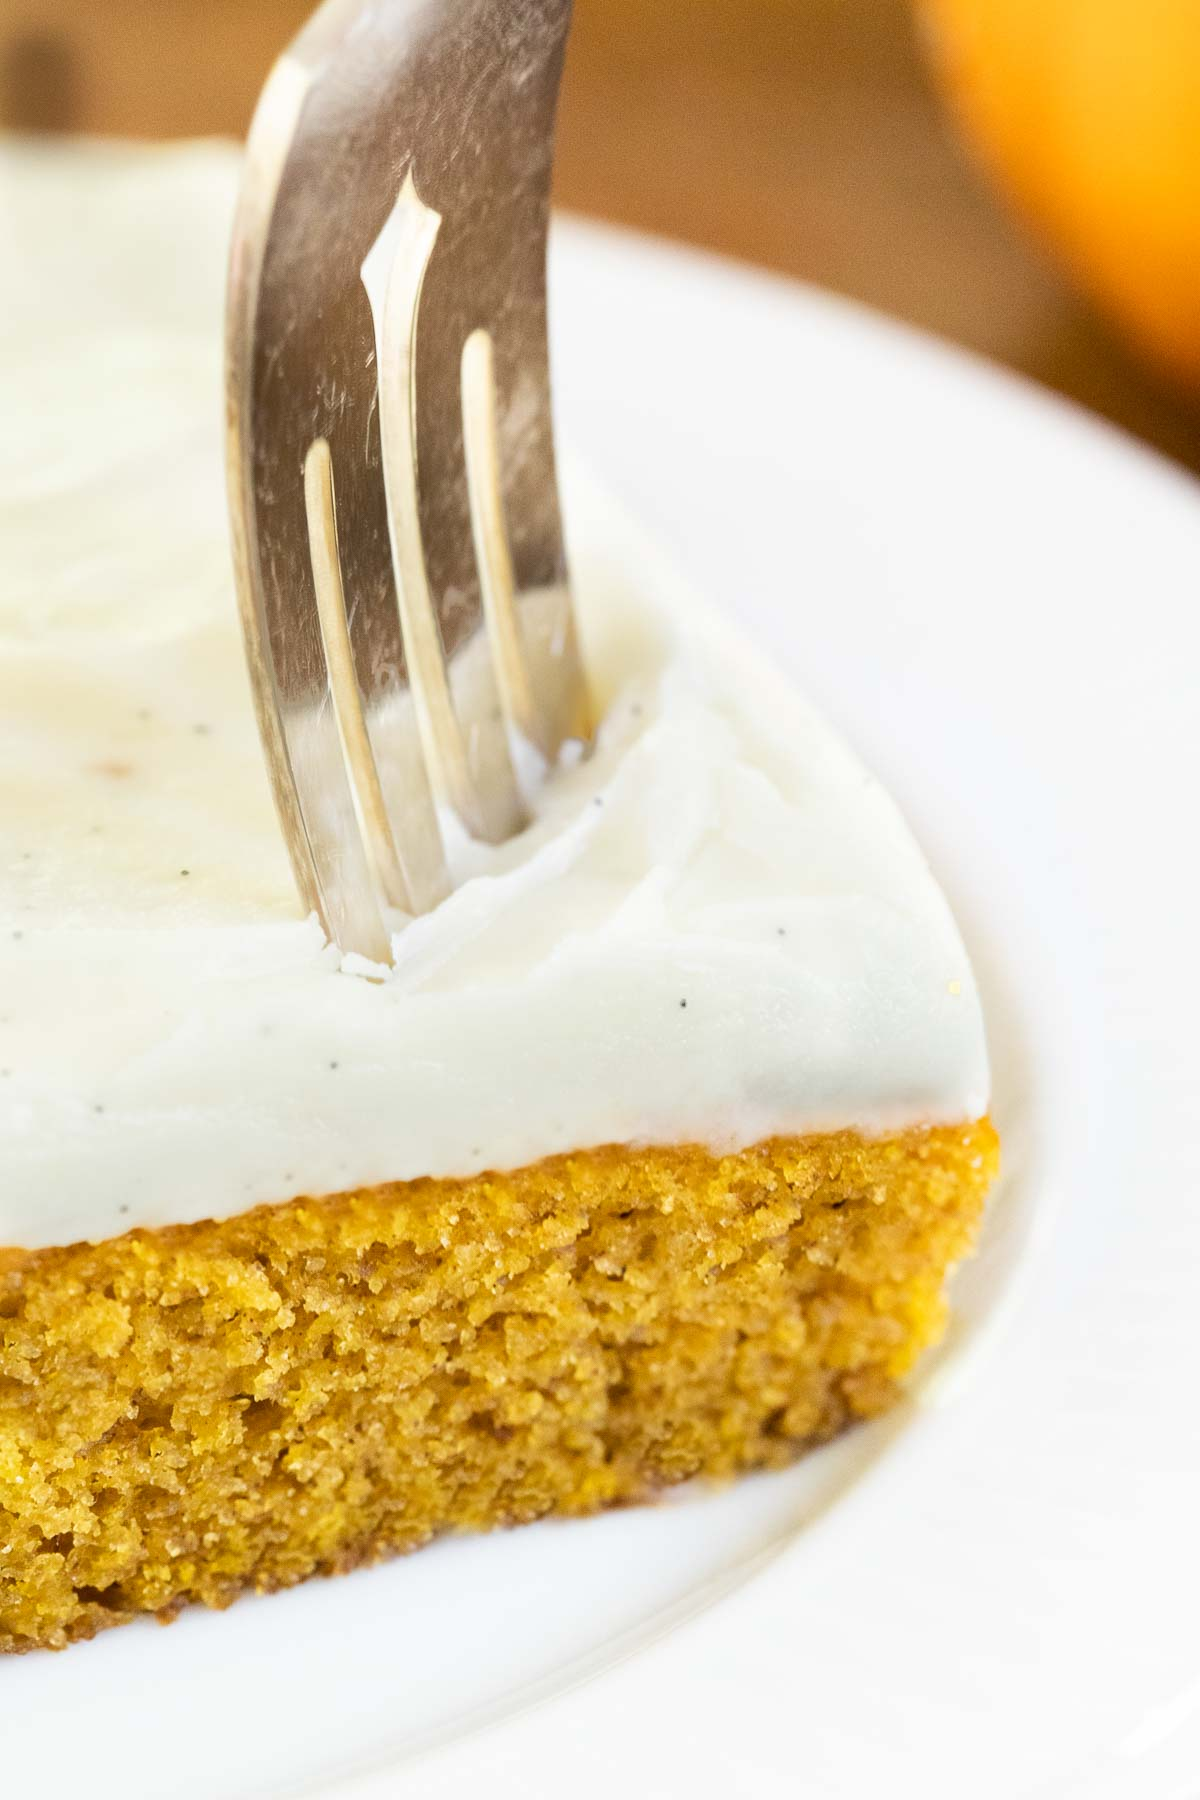 Vertical extreme closeup of a fork cutting through a slice of One-Bowl, No-Mixer Pumpkin Sheet Cake.